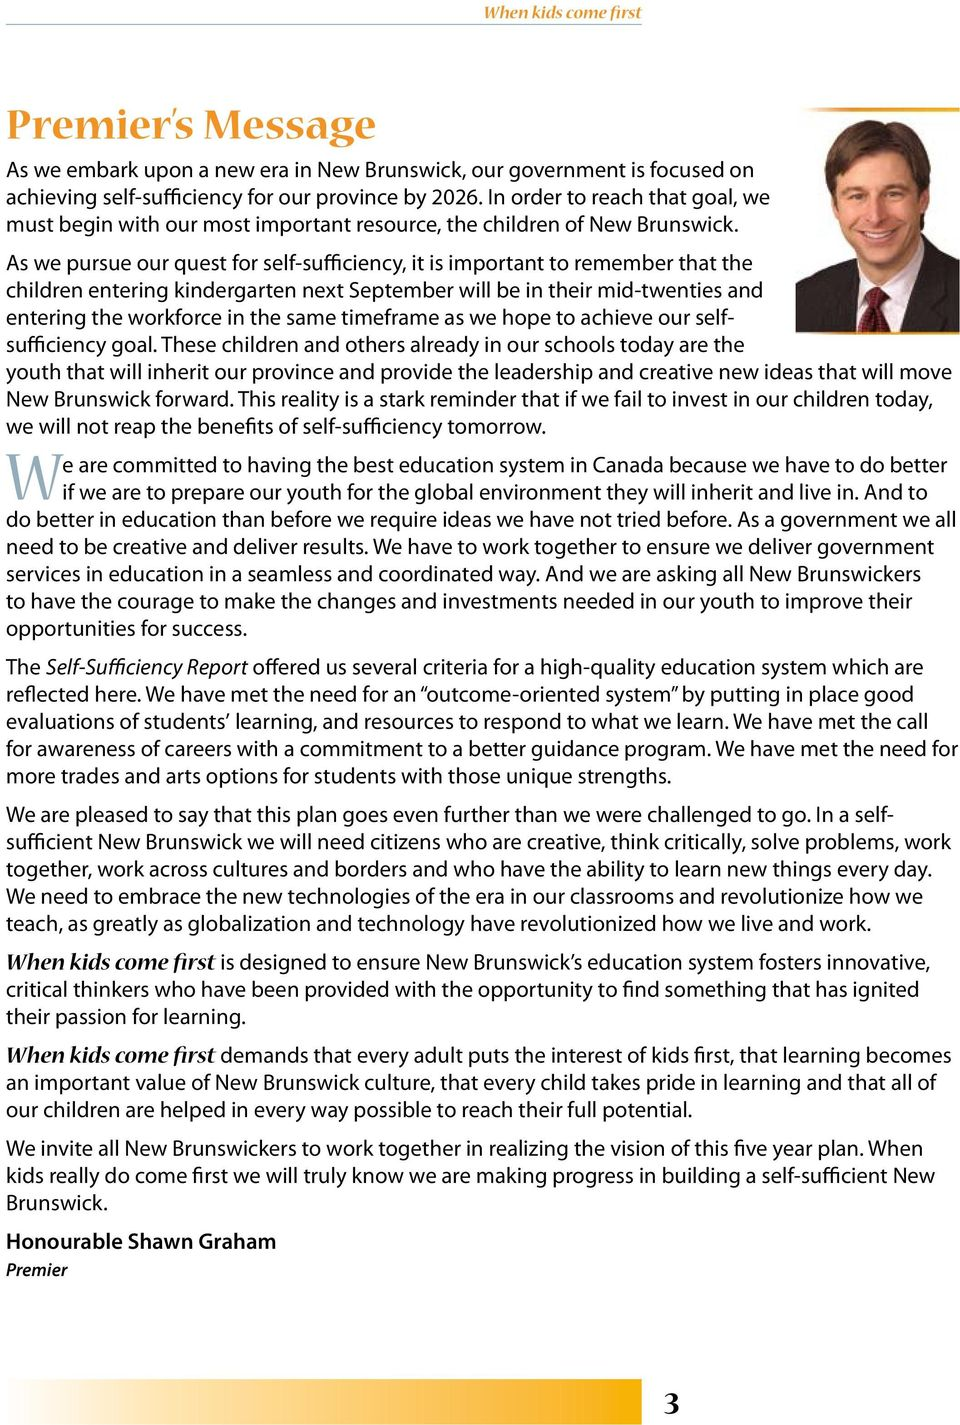 As we pursue our quest for self-sufficiency, it is important to remember that the children entering kindergarten next September will be in their mid-twenties and entering the workforce in the same